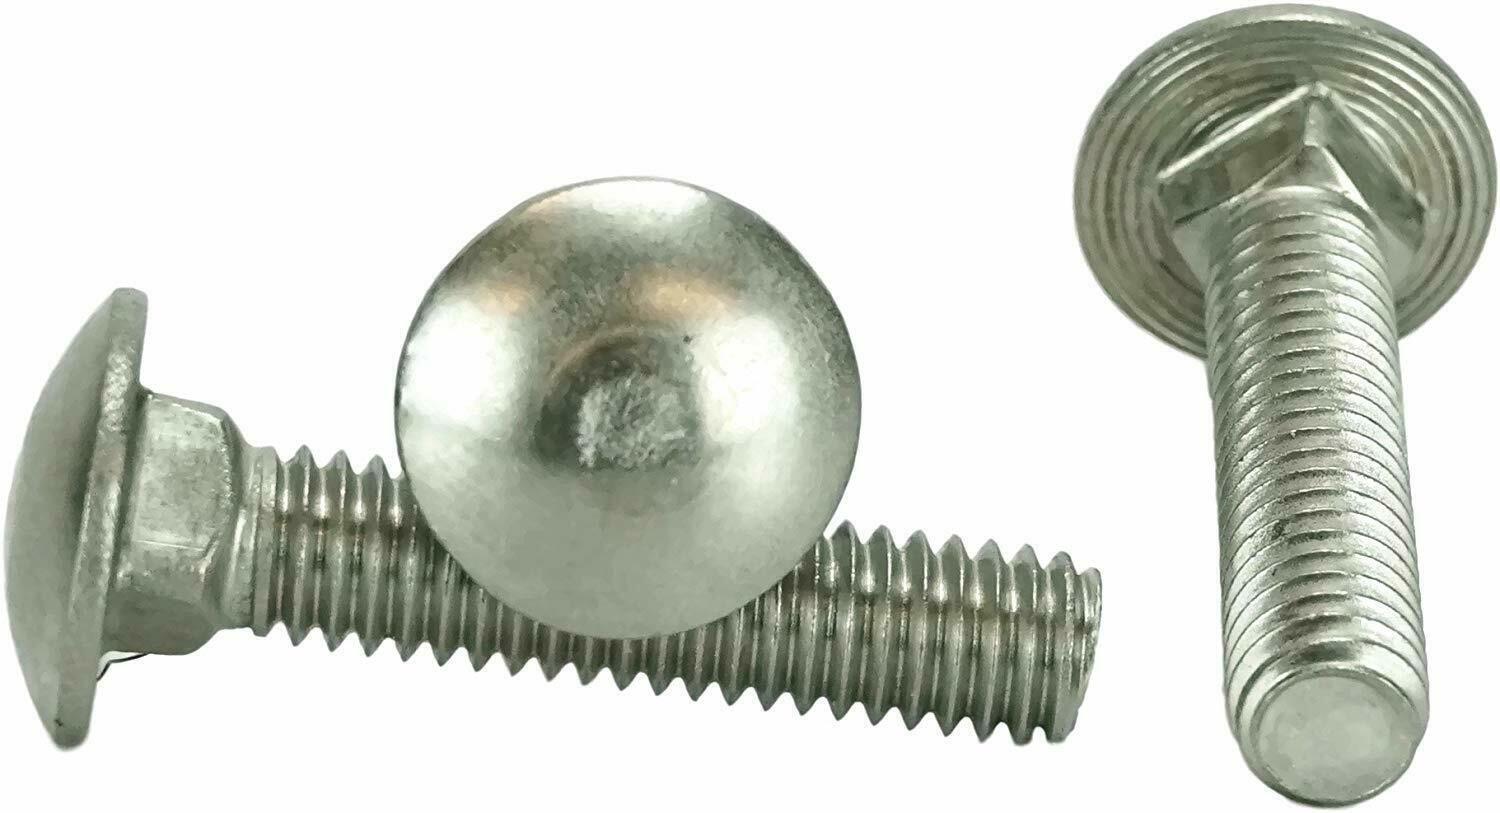 "Primary image for 5/16-18 x 1 1/2"" Stainless Steel Carriage Bolt 18-8 / 304 200pcs"